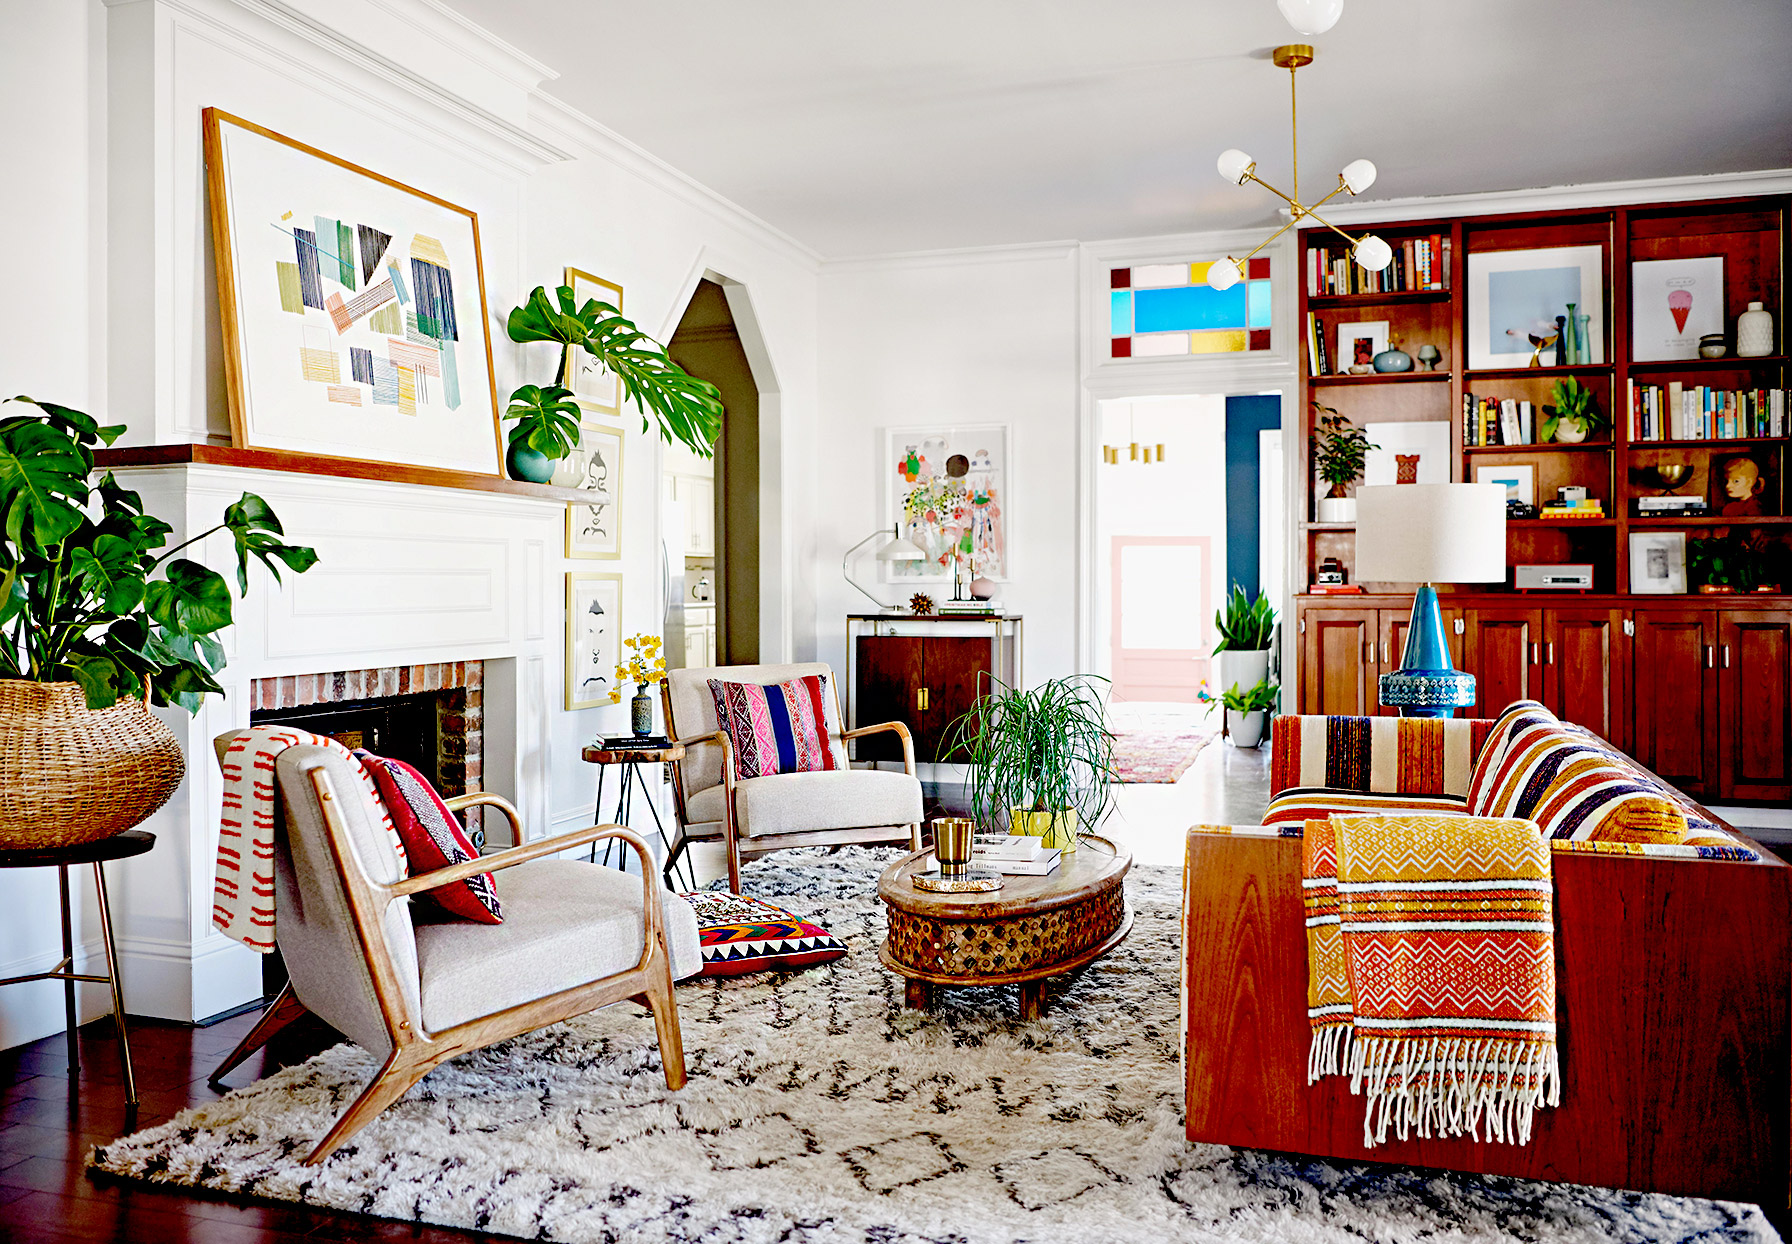 The Spring One Room Challenge Starts Today: Here's How to Follow Along | Better Homes & Gardens